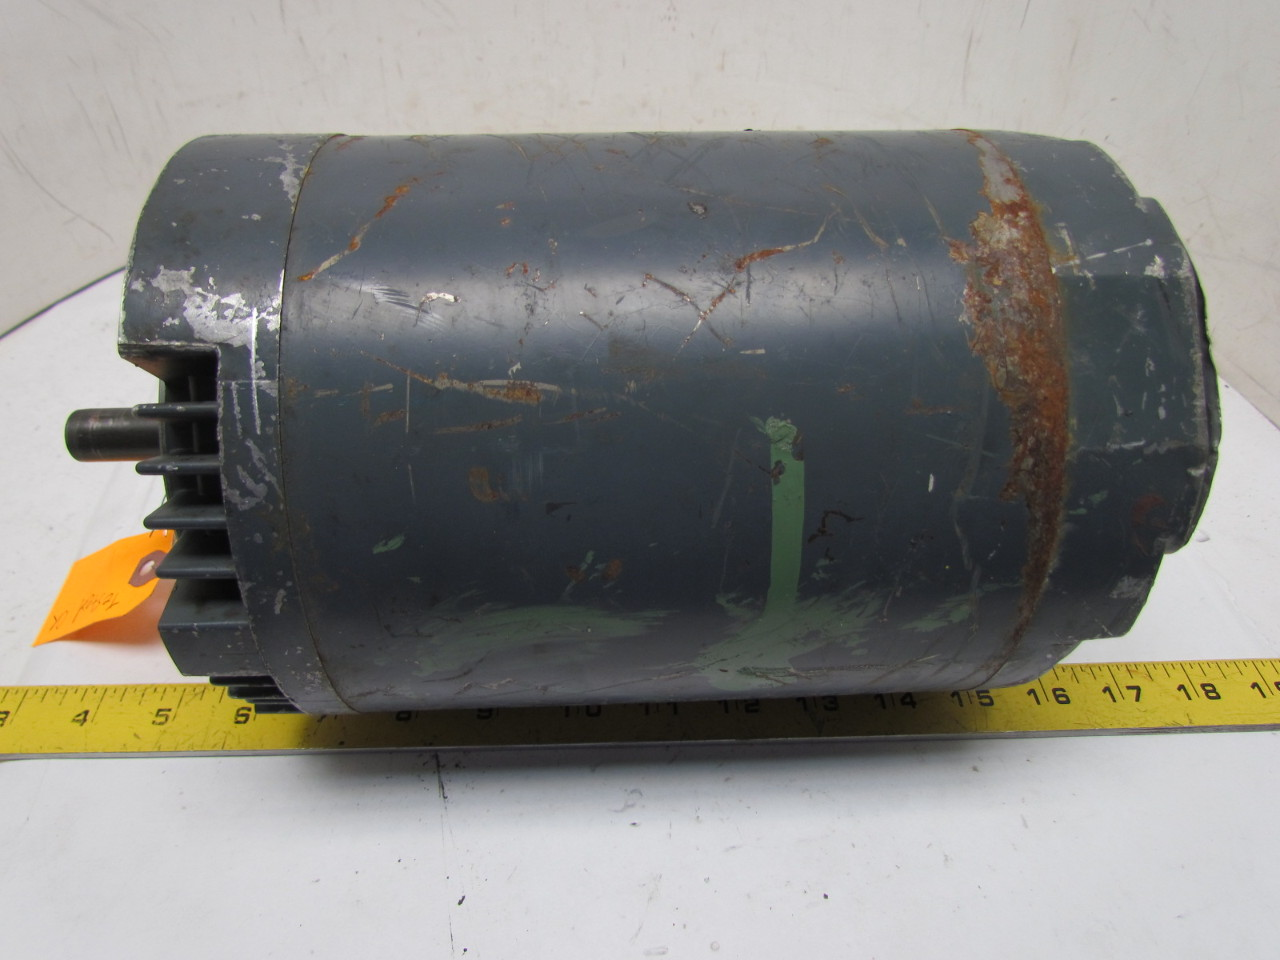 Westinghouse 311p134a 1 2 hp electric motor 230 460v 3ph for 2 rpm electric motor